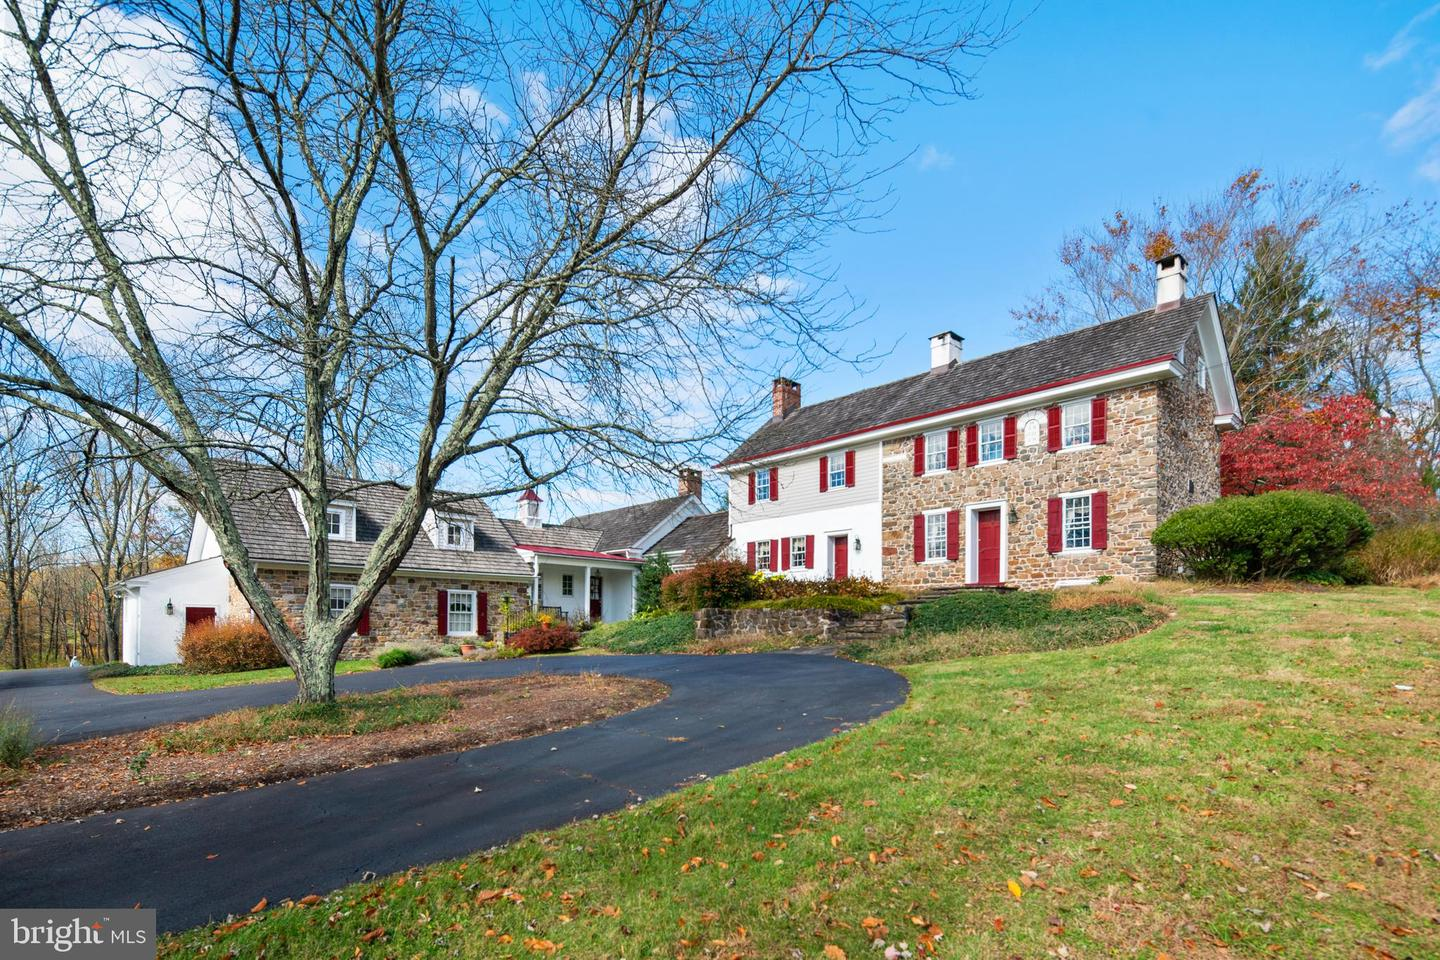 1187 EAGLE RD, NEWTOWN, PA